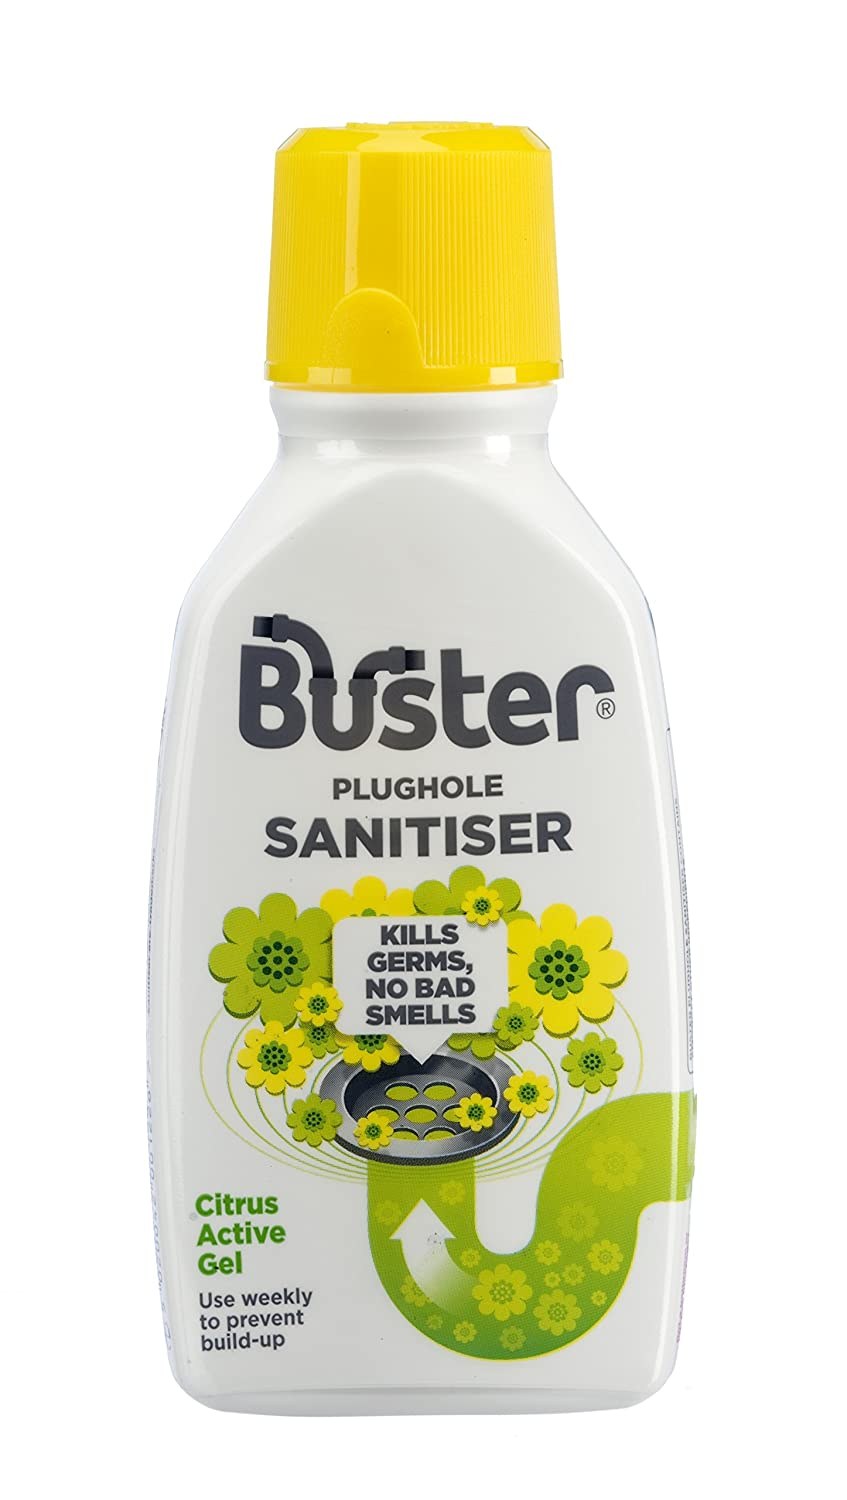 Buster Active Citrus Sanitiser Gel, 300 ml, Pack of 6 Challs International 6122